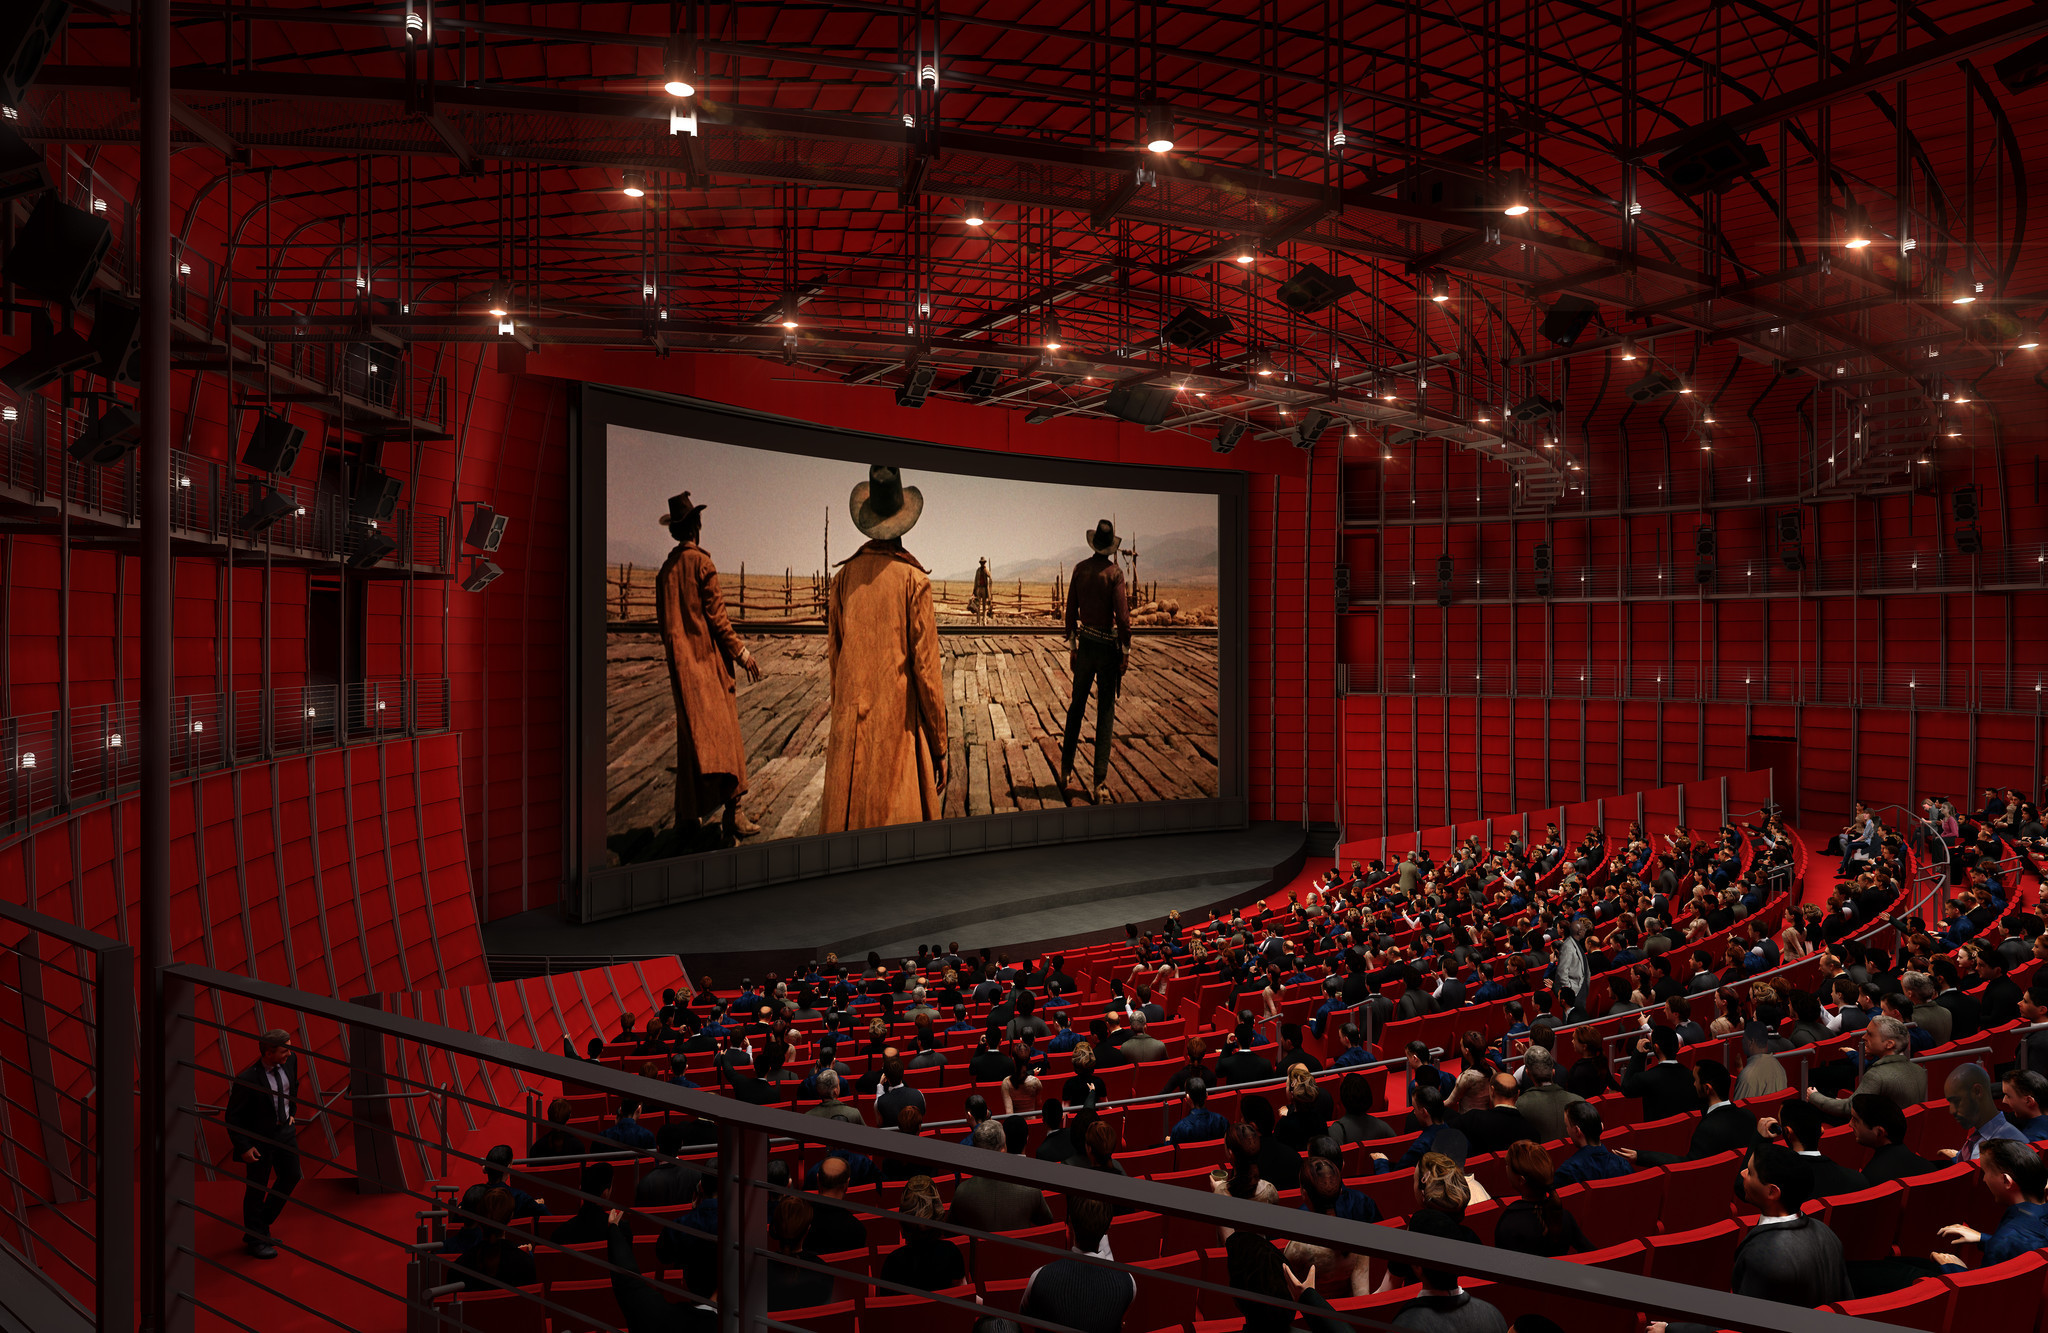 The interior of the 1,000-seat theater, in an artist's rendering.